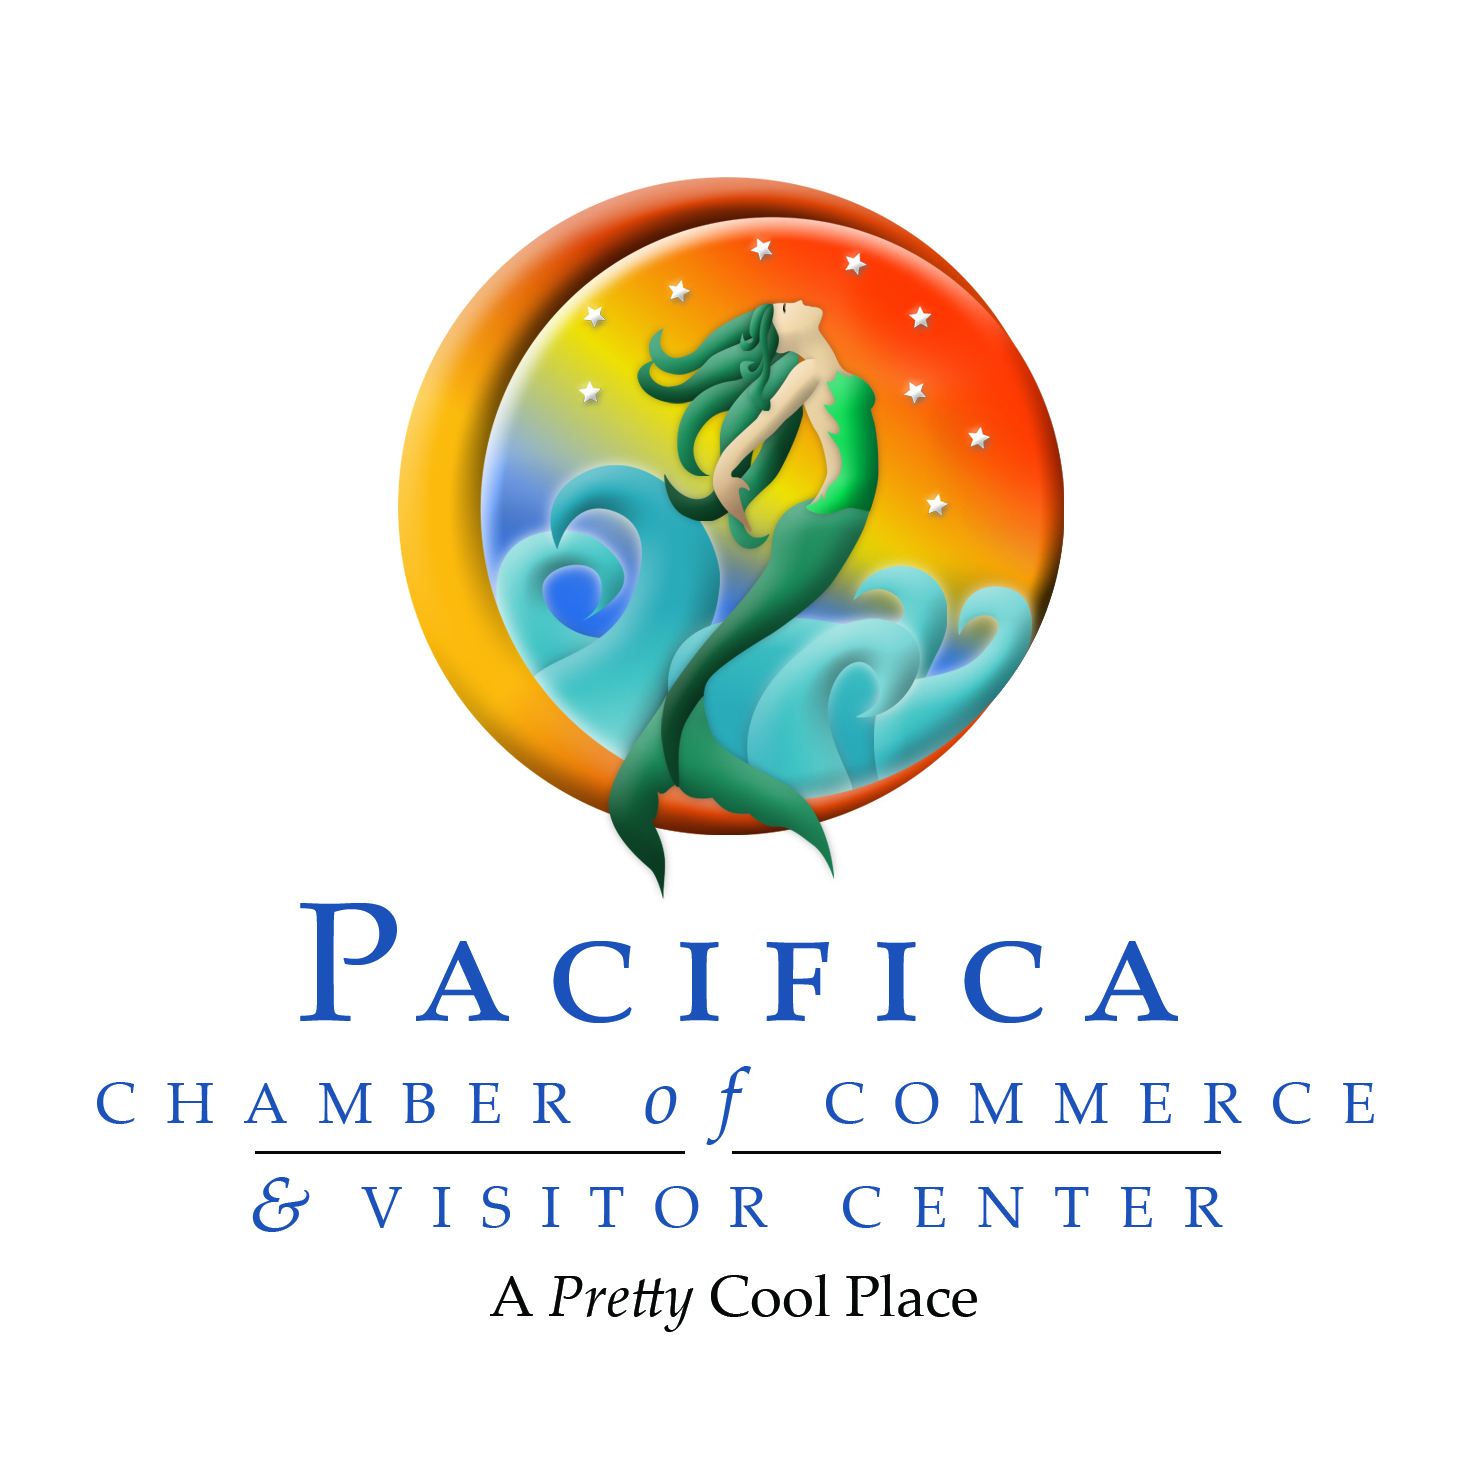 Pacifica Chamber of Commerce